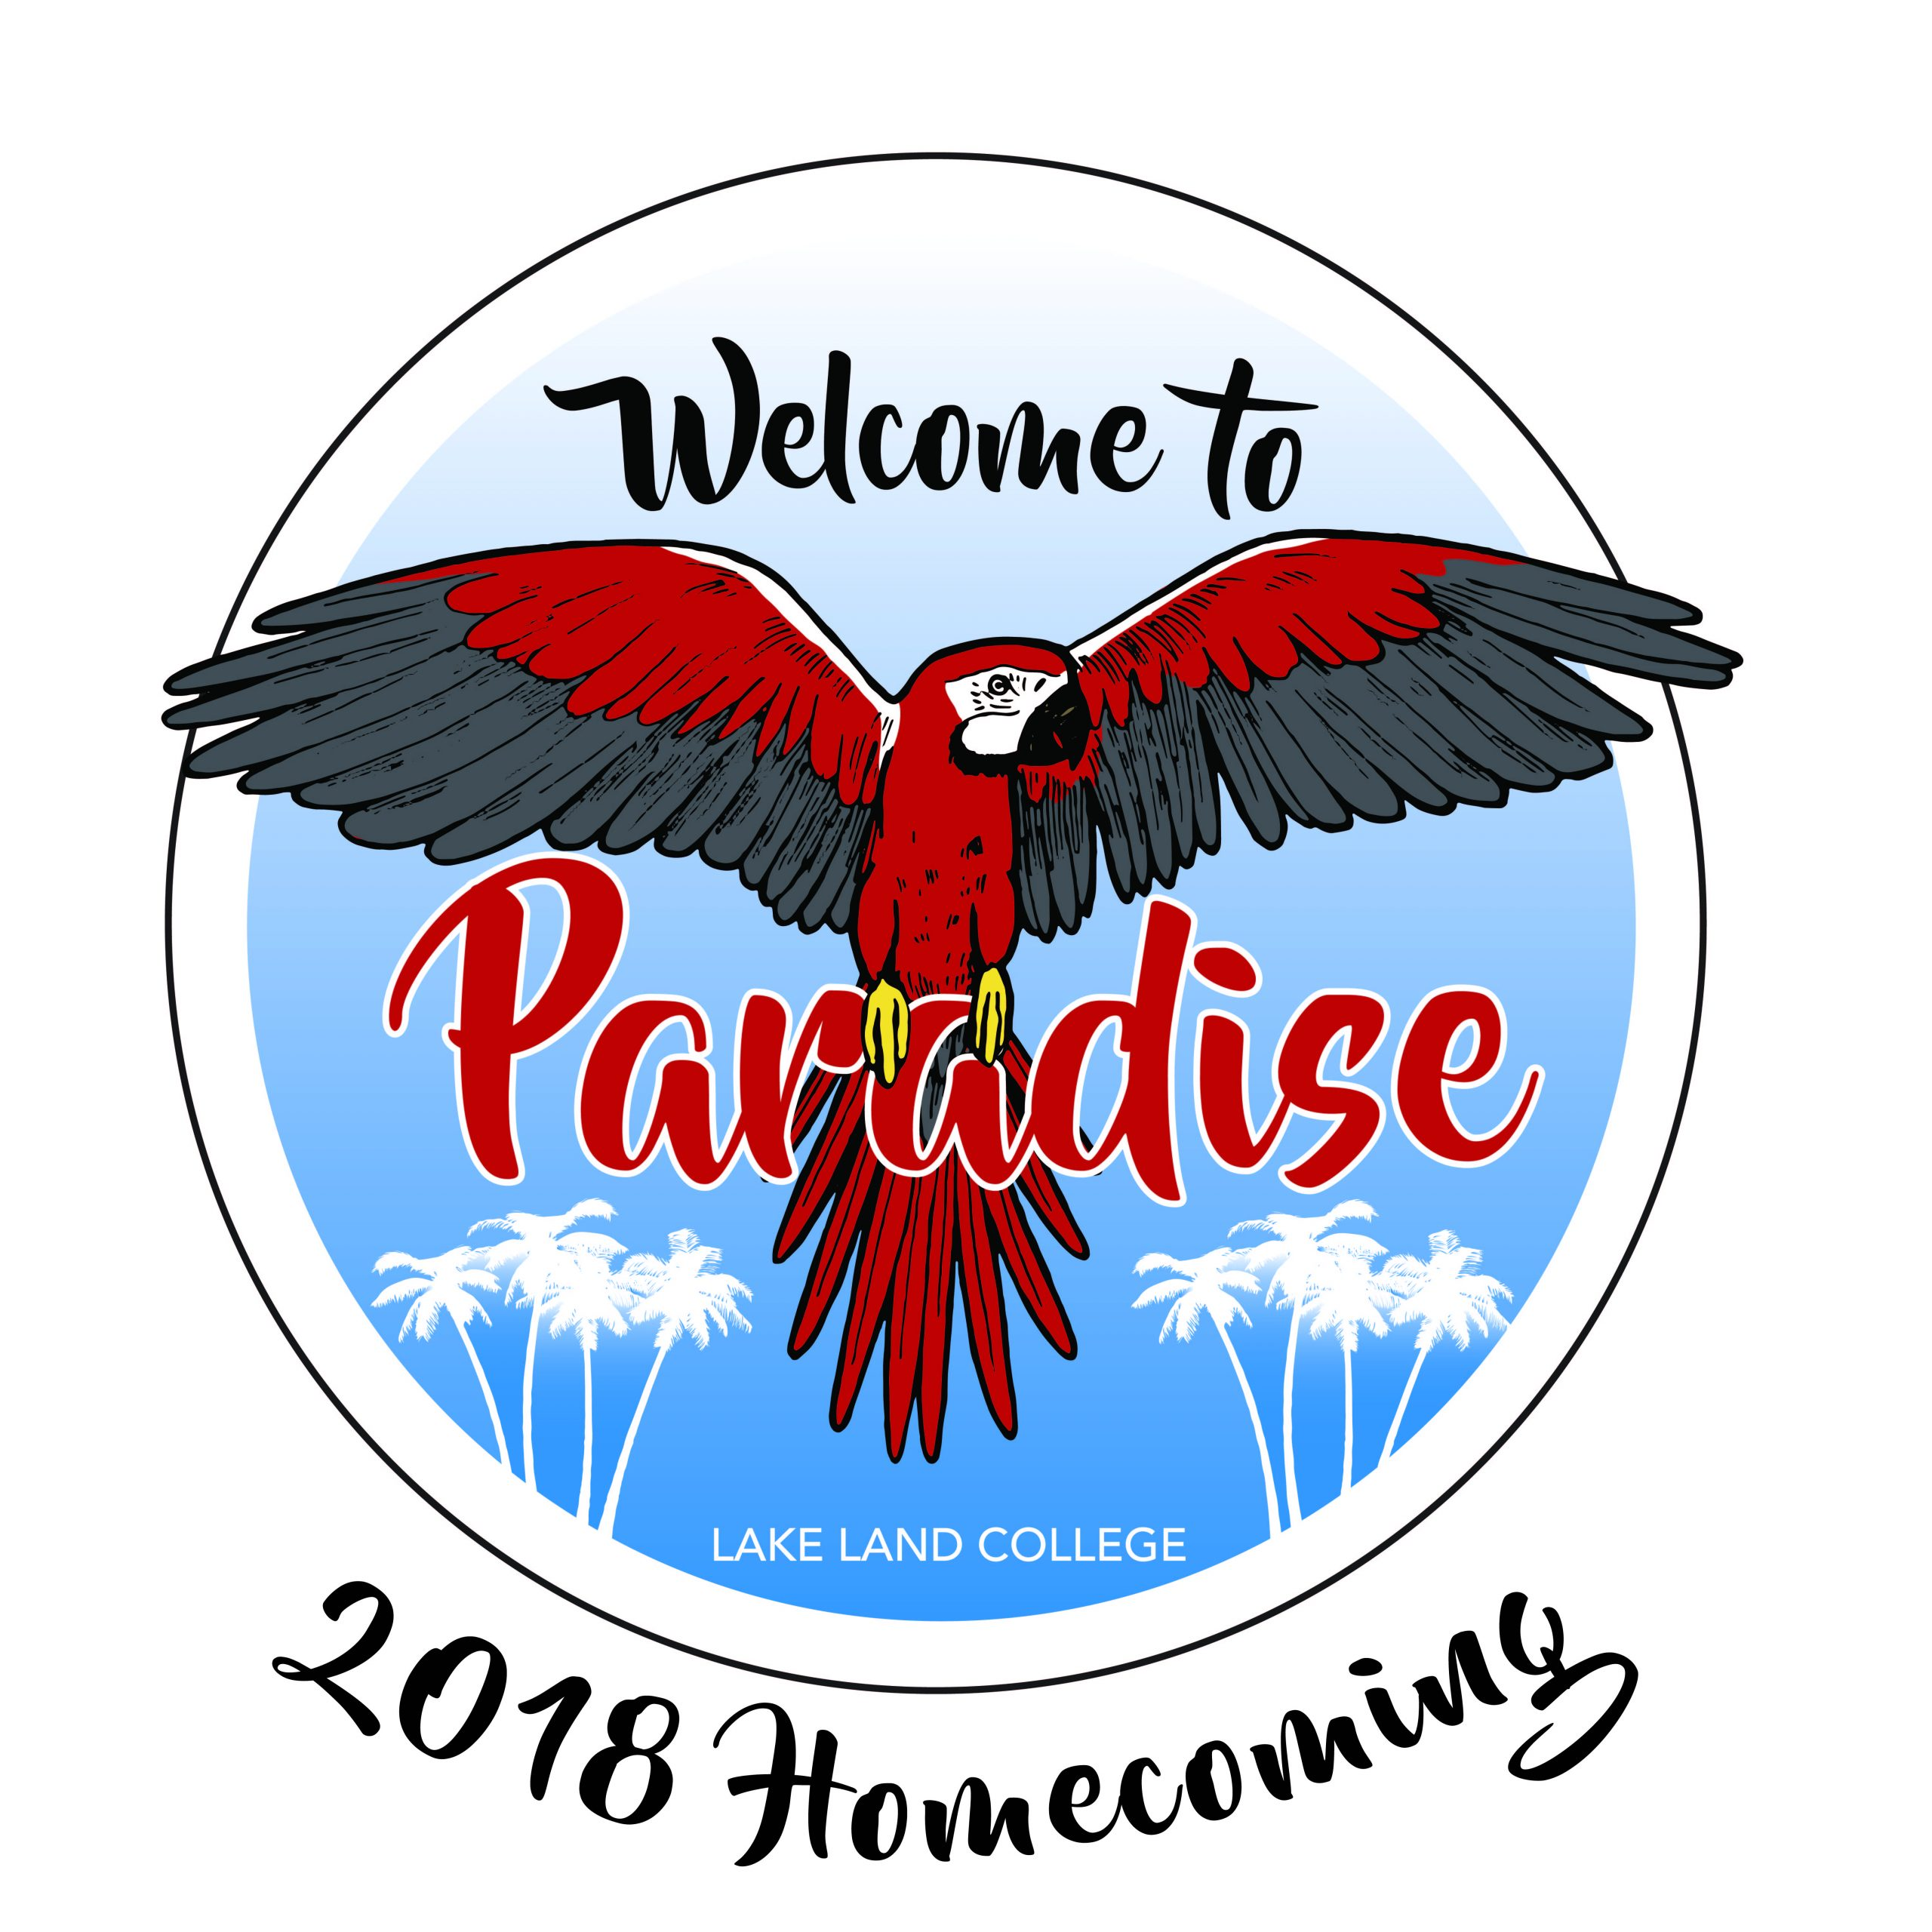 Lake Land College Calling all Alumni Home to Celebrate Laker Homecoming